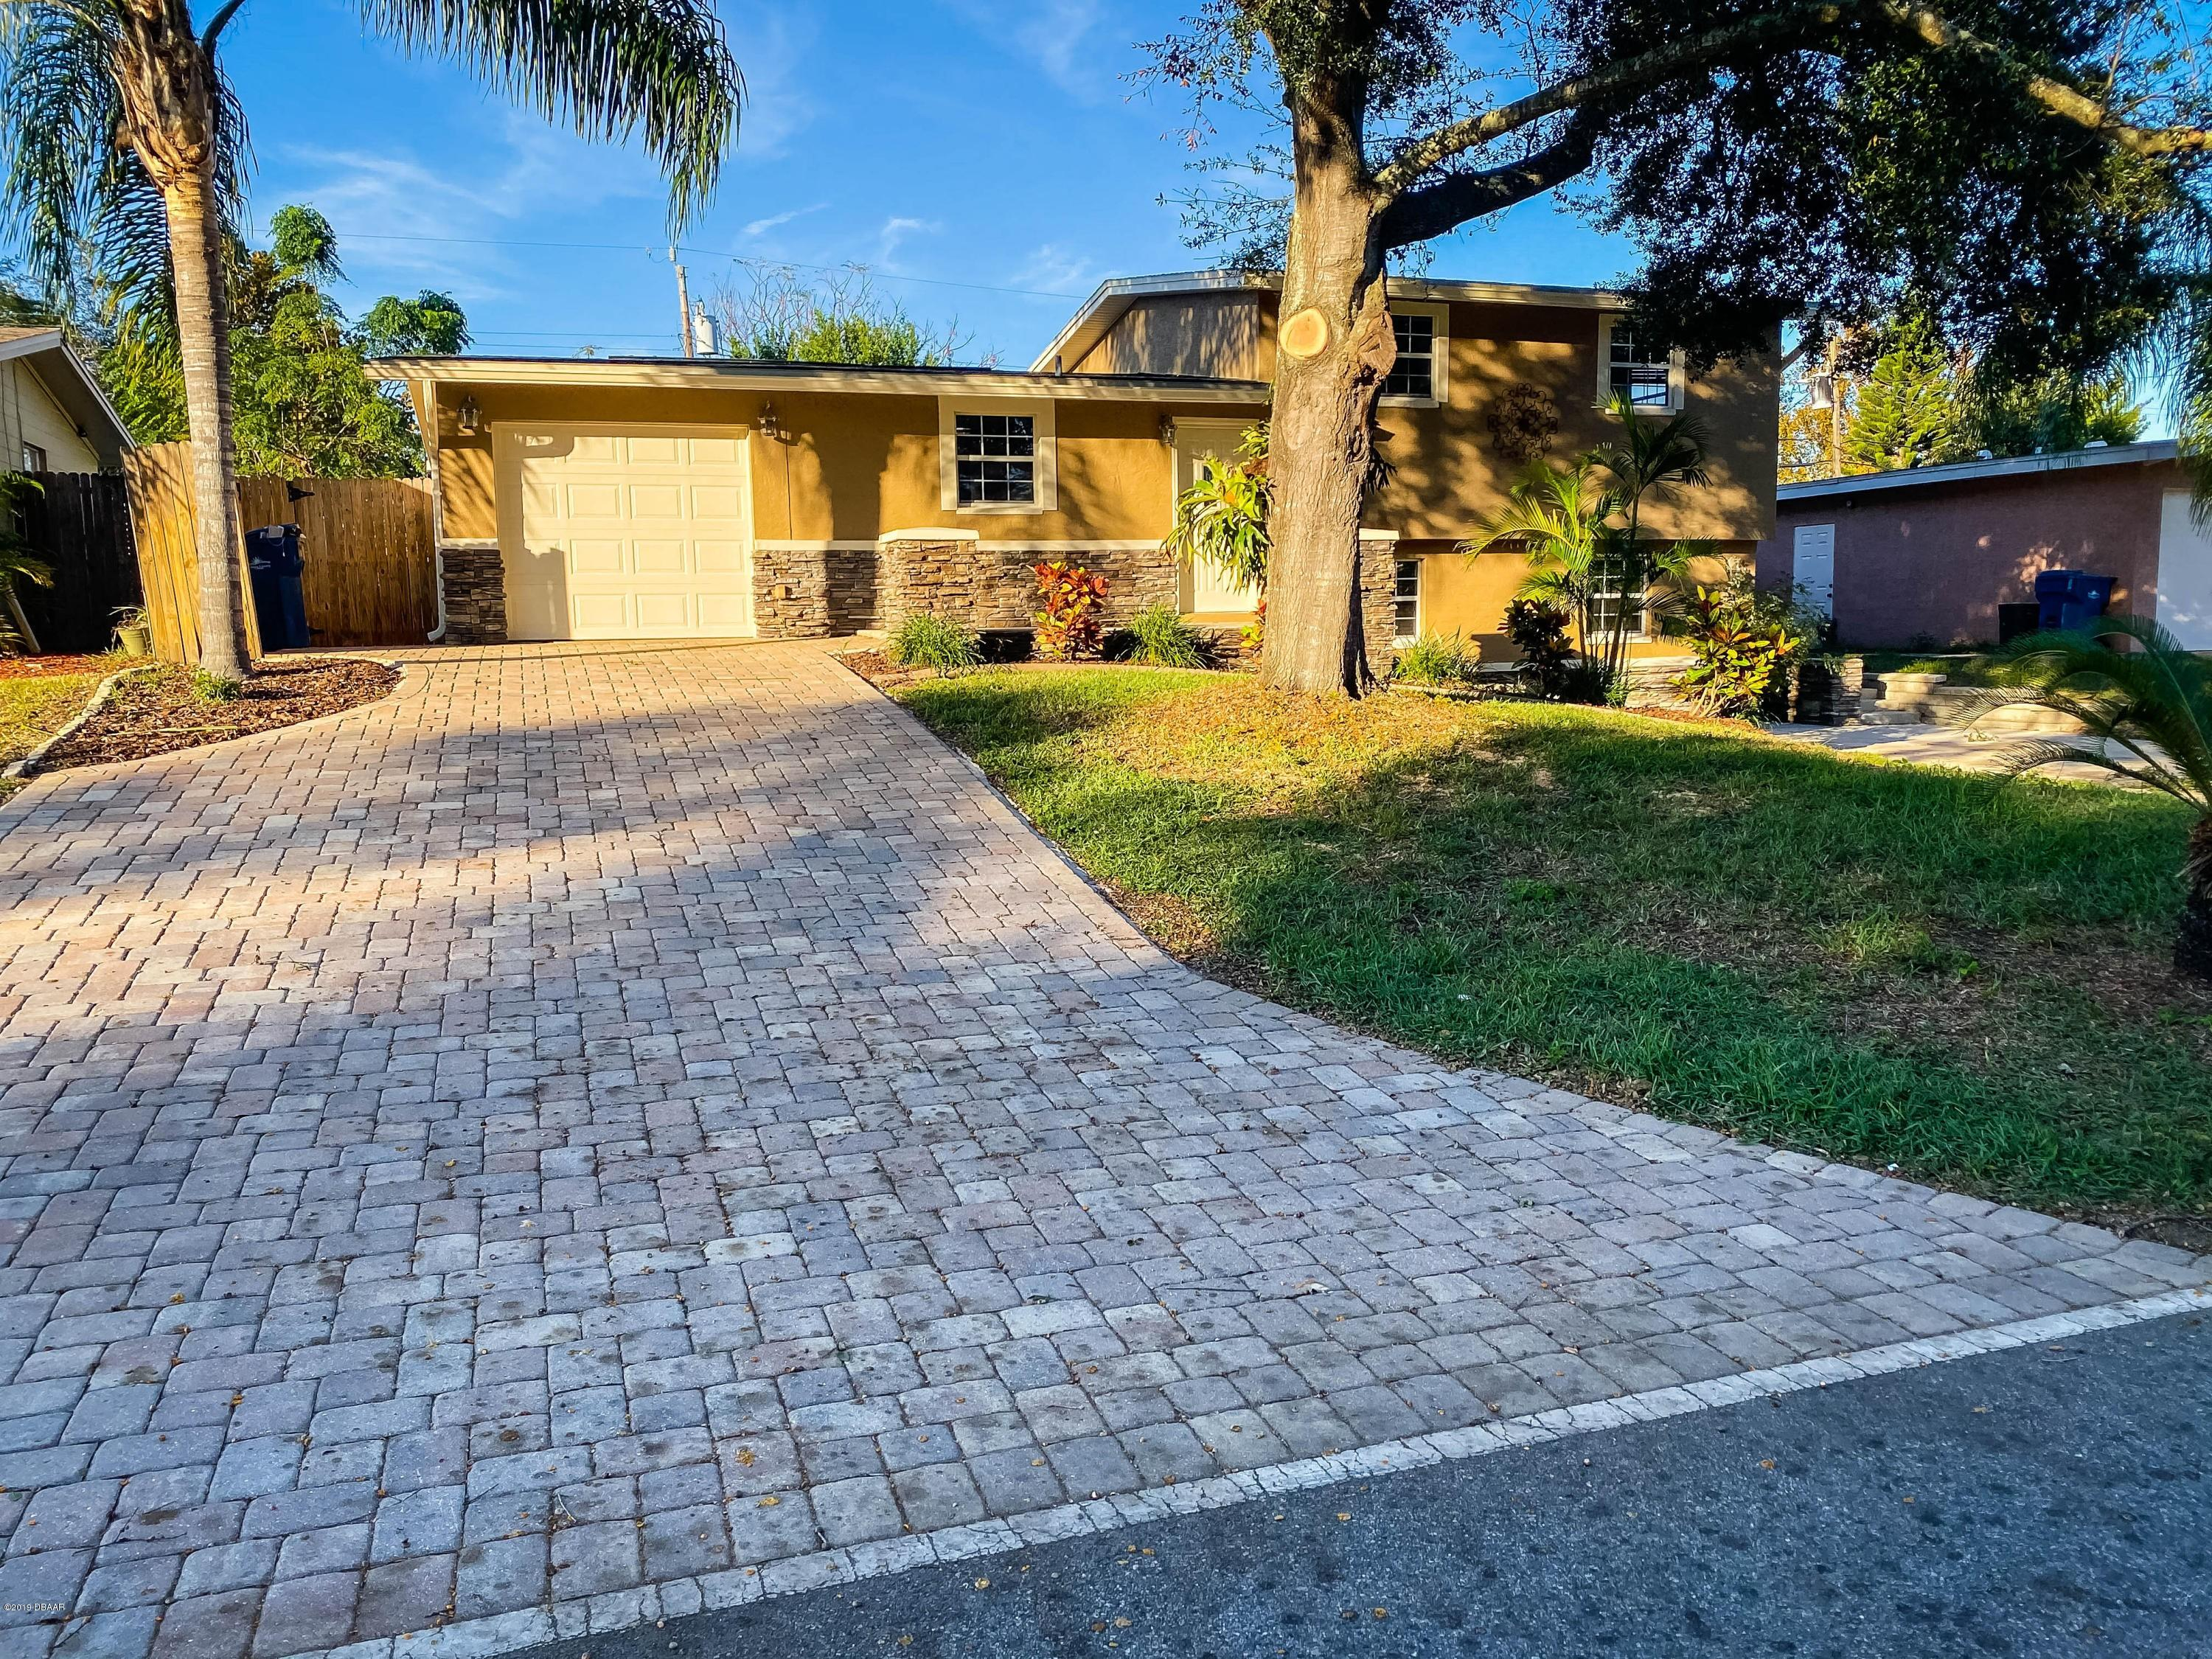 1424 Flomich St, Holly Hill, Florida